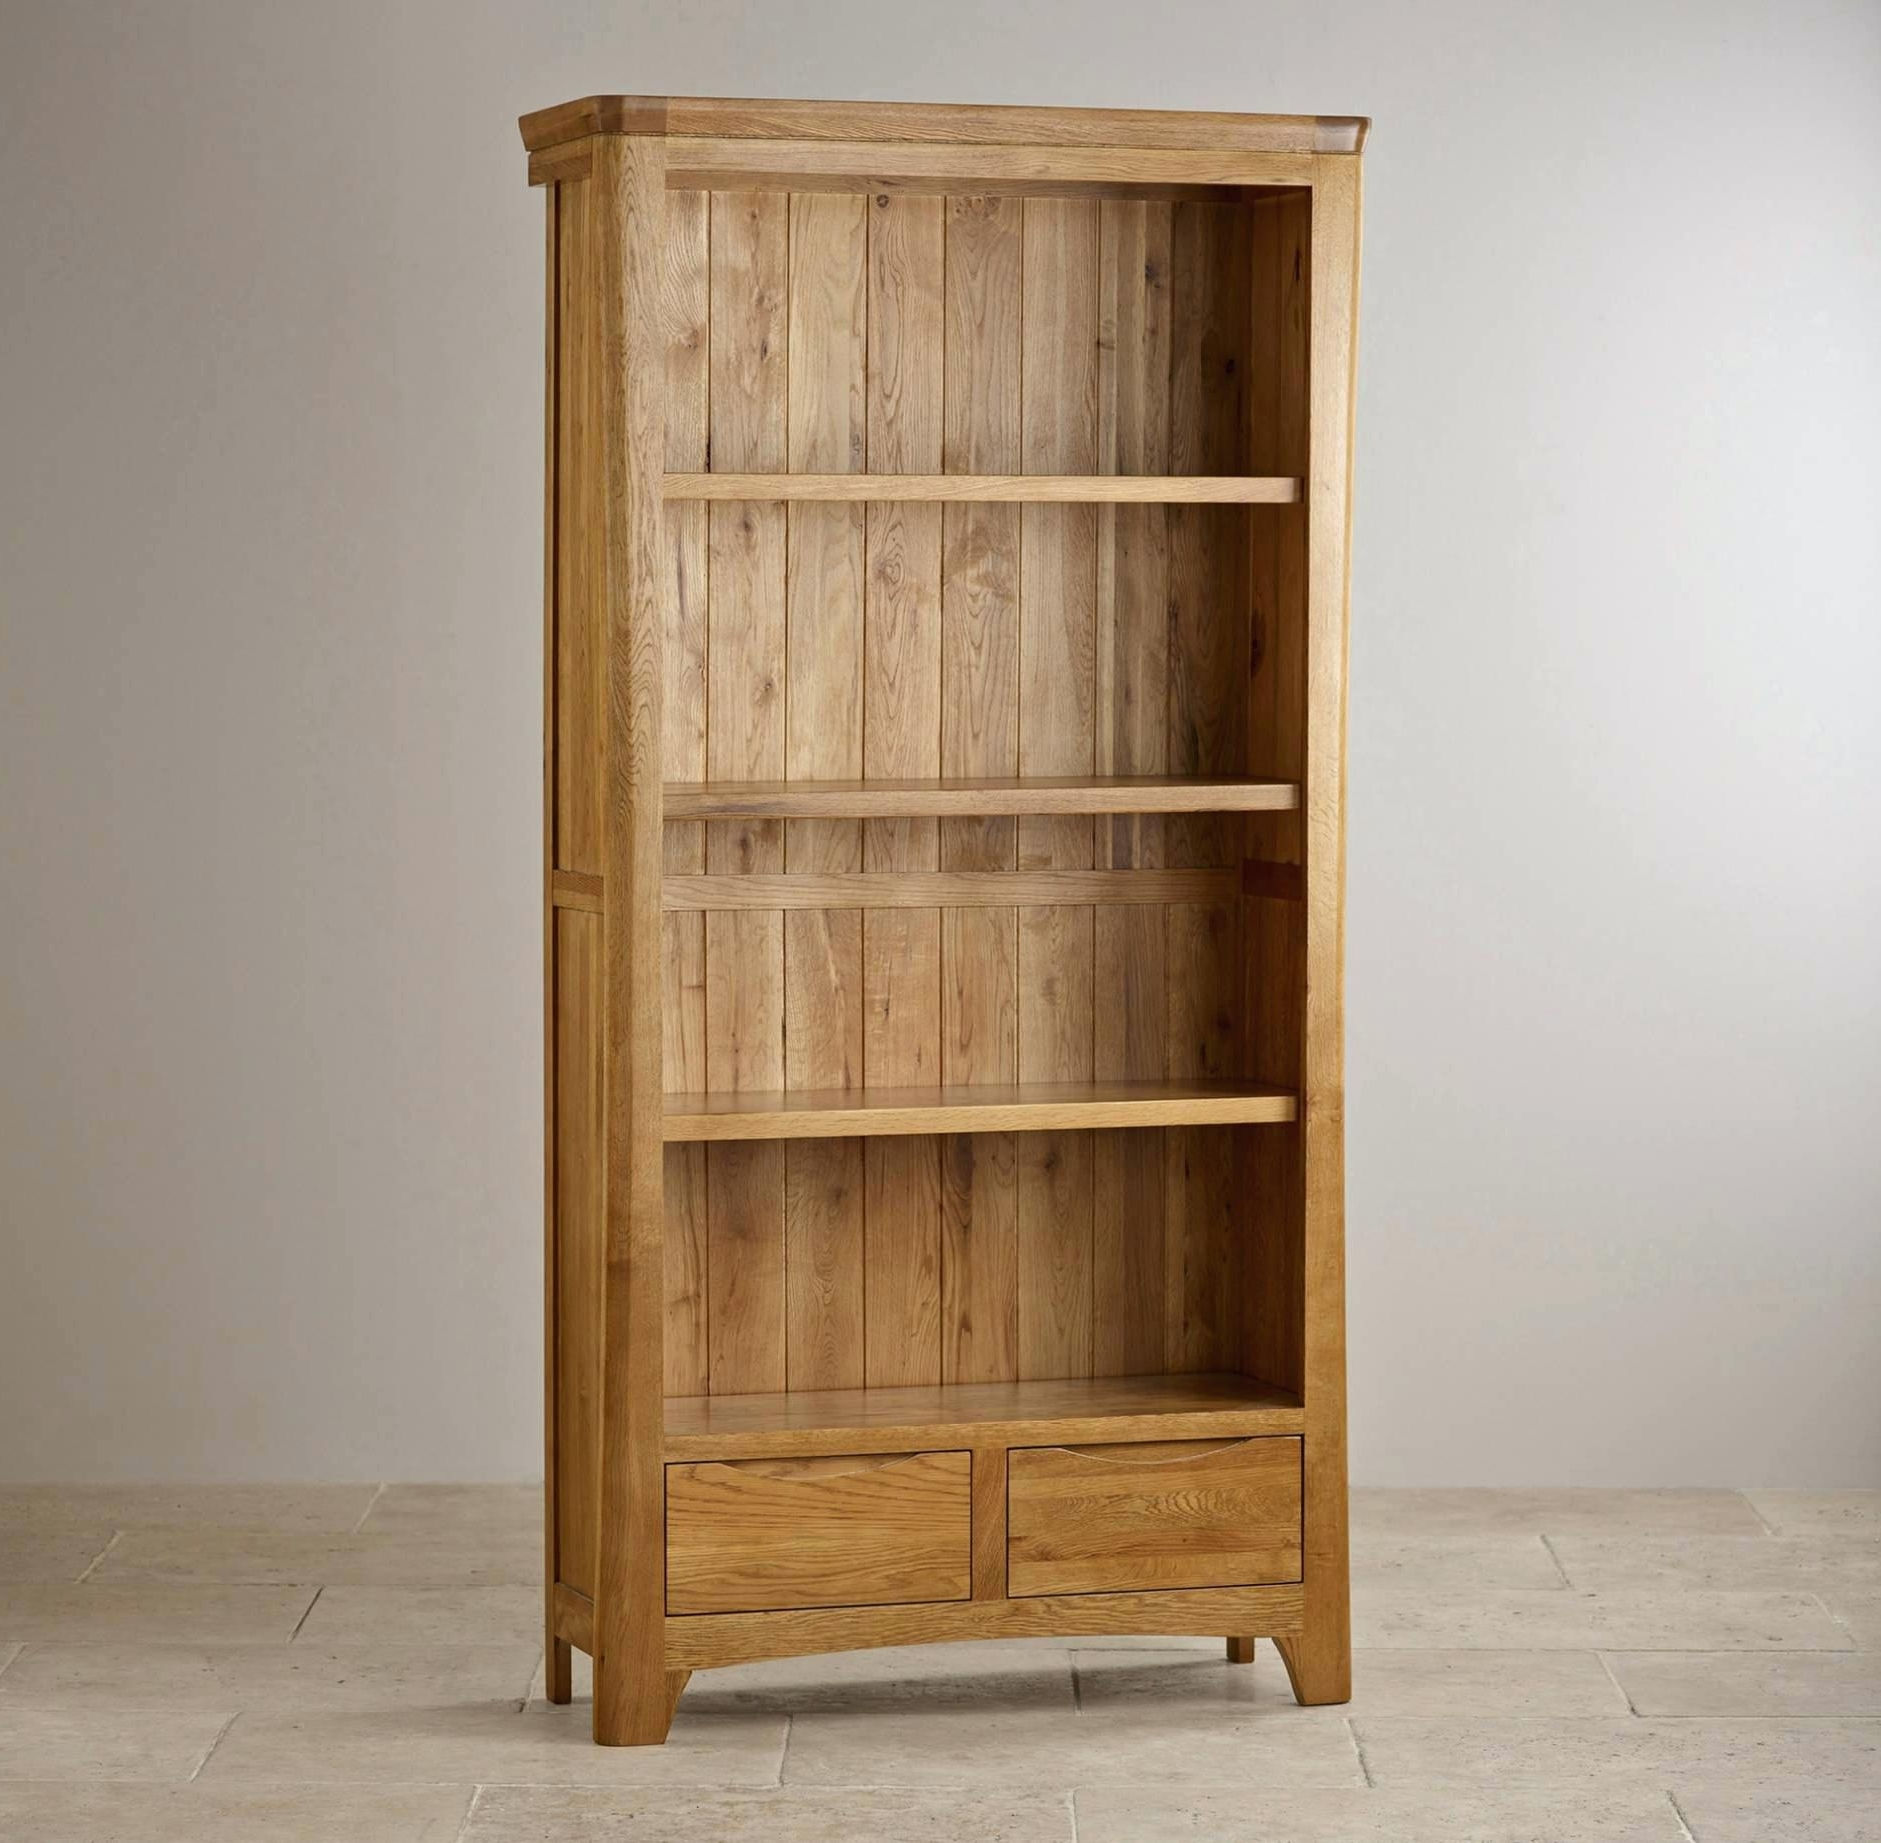 Popular Wooden Bookcases Intended For Wooden Bookcases Cherry Wood Bookcases For Sale Wooden Bookcases (View 9 of 15)